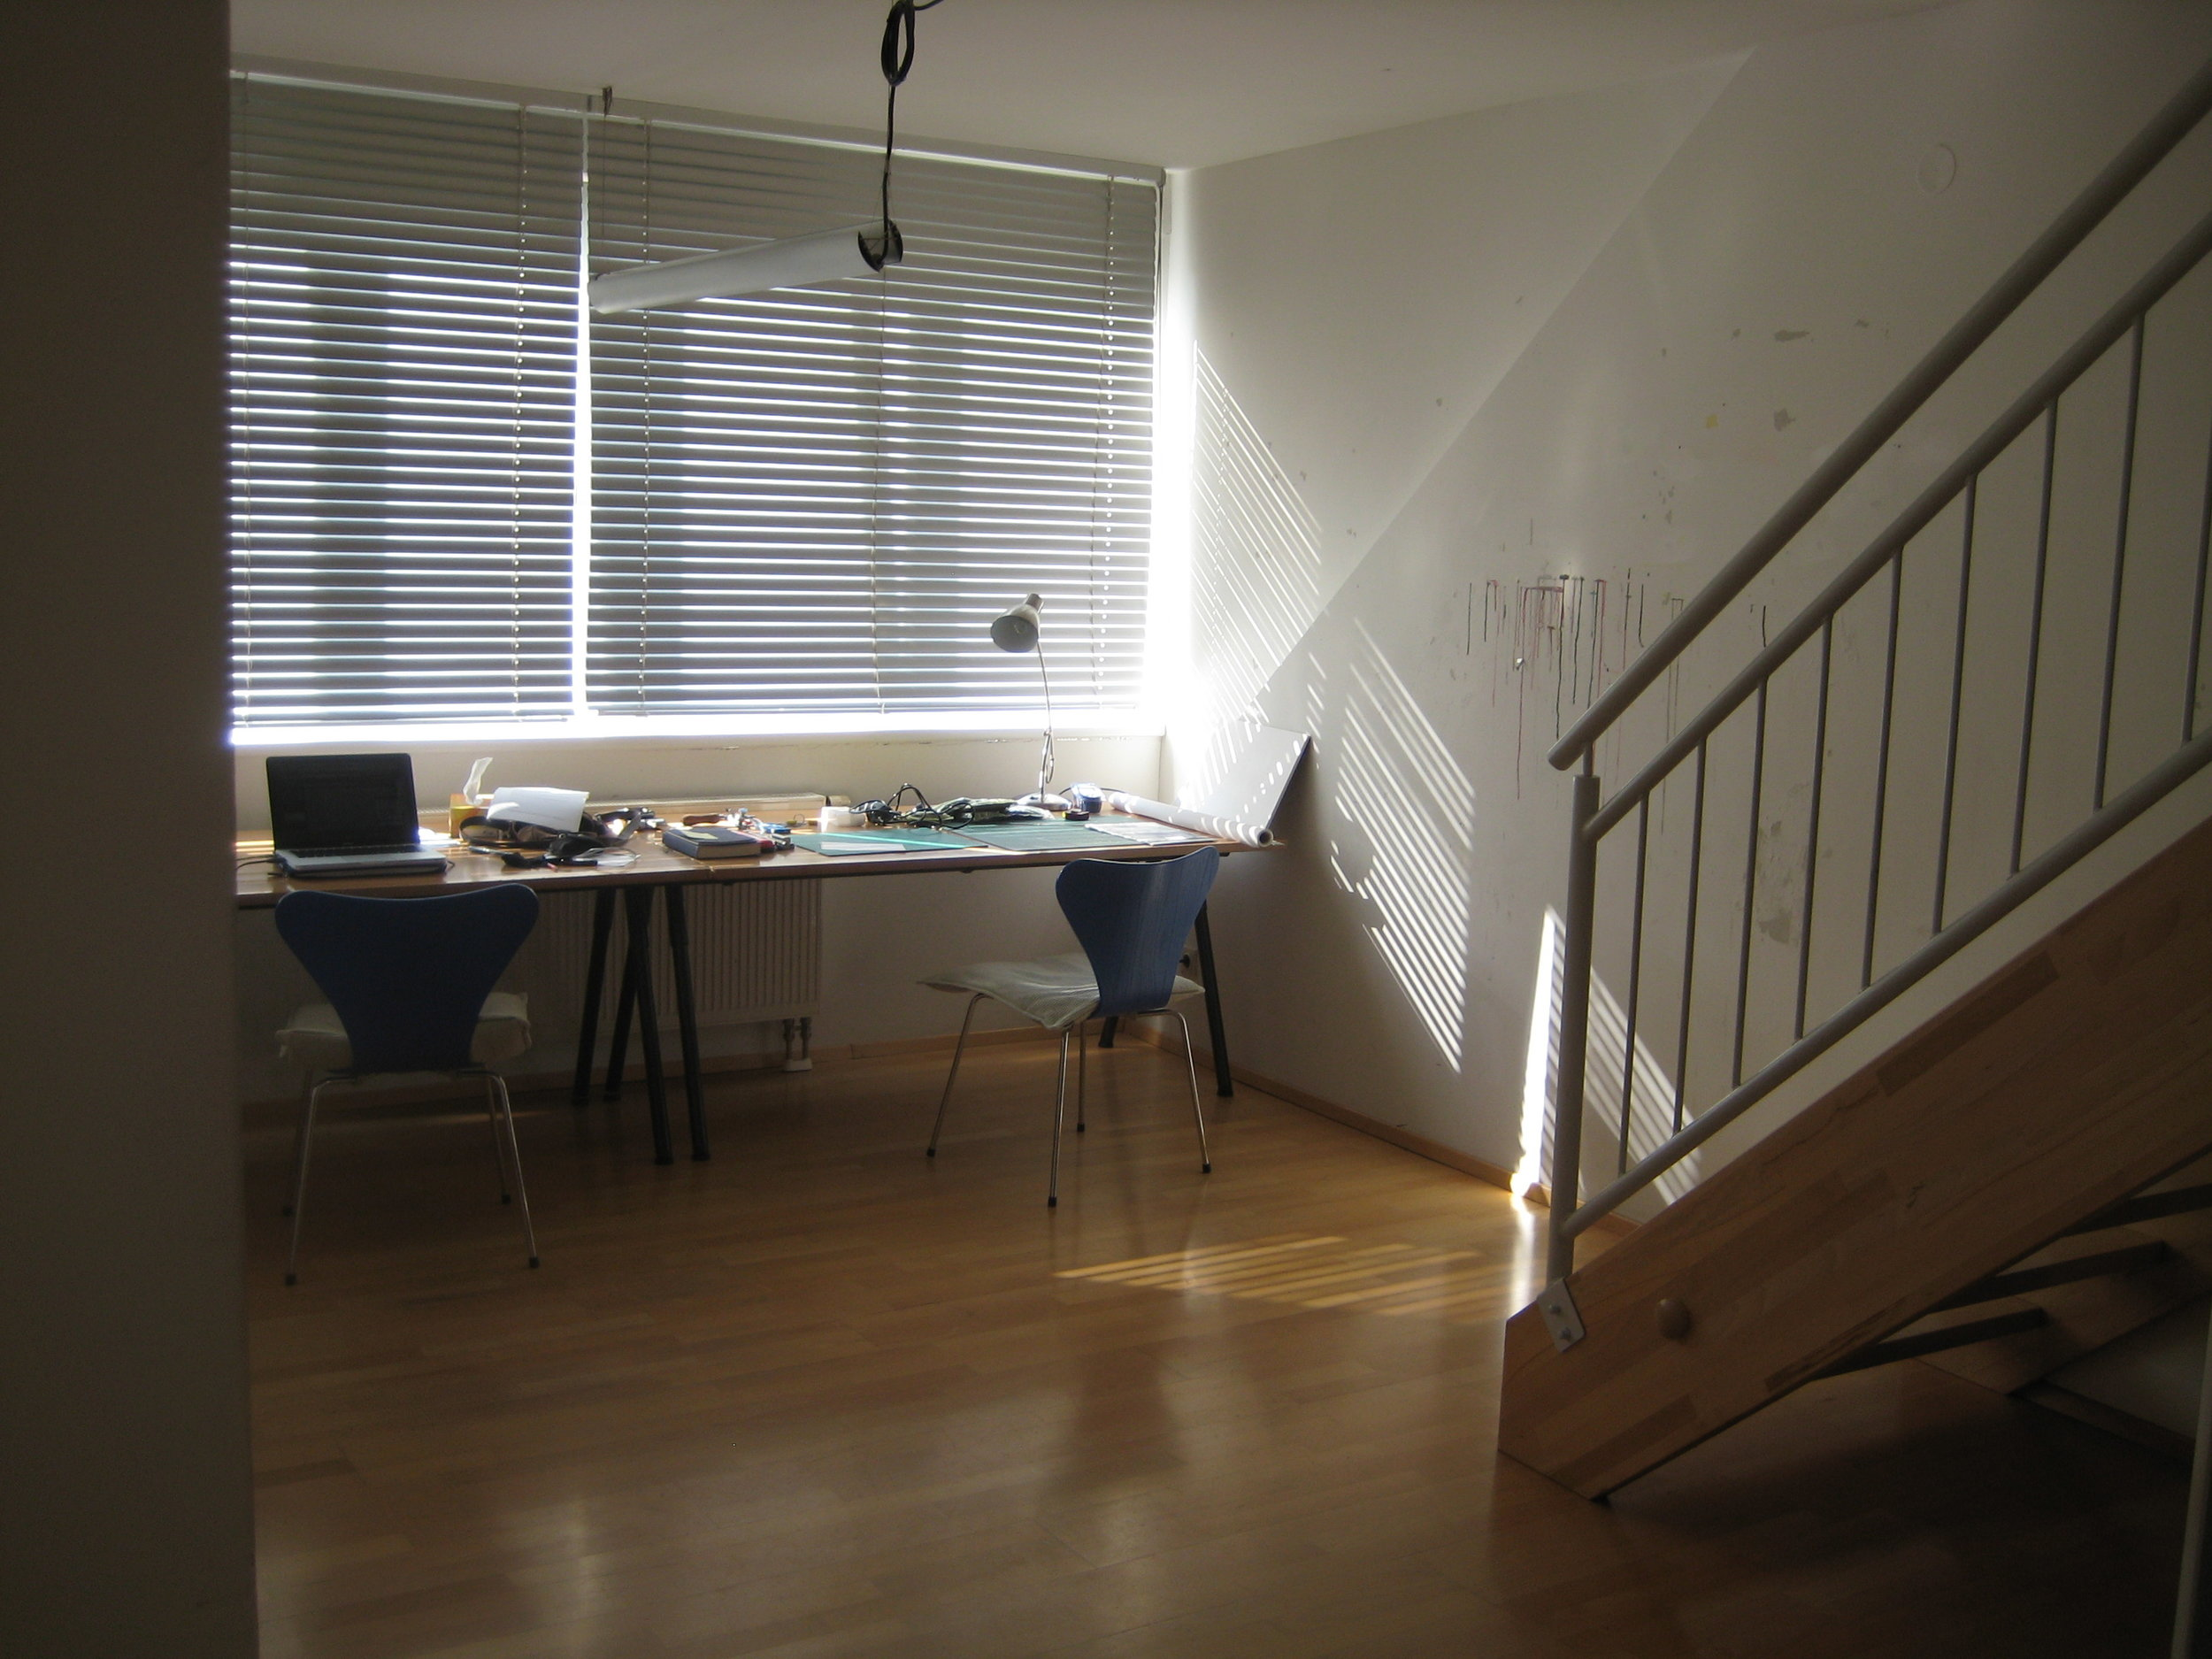 krems-studio interior-1.JPG